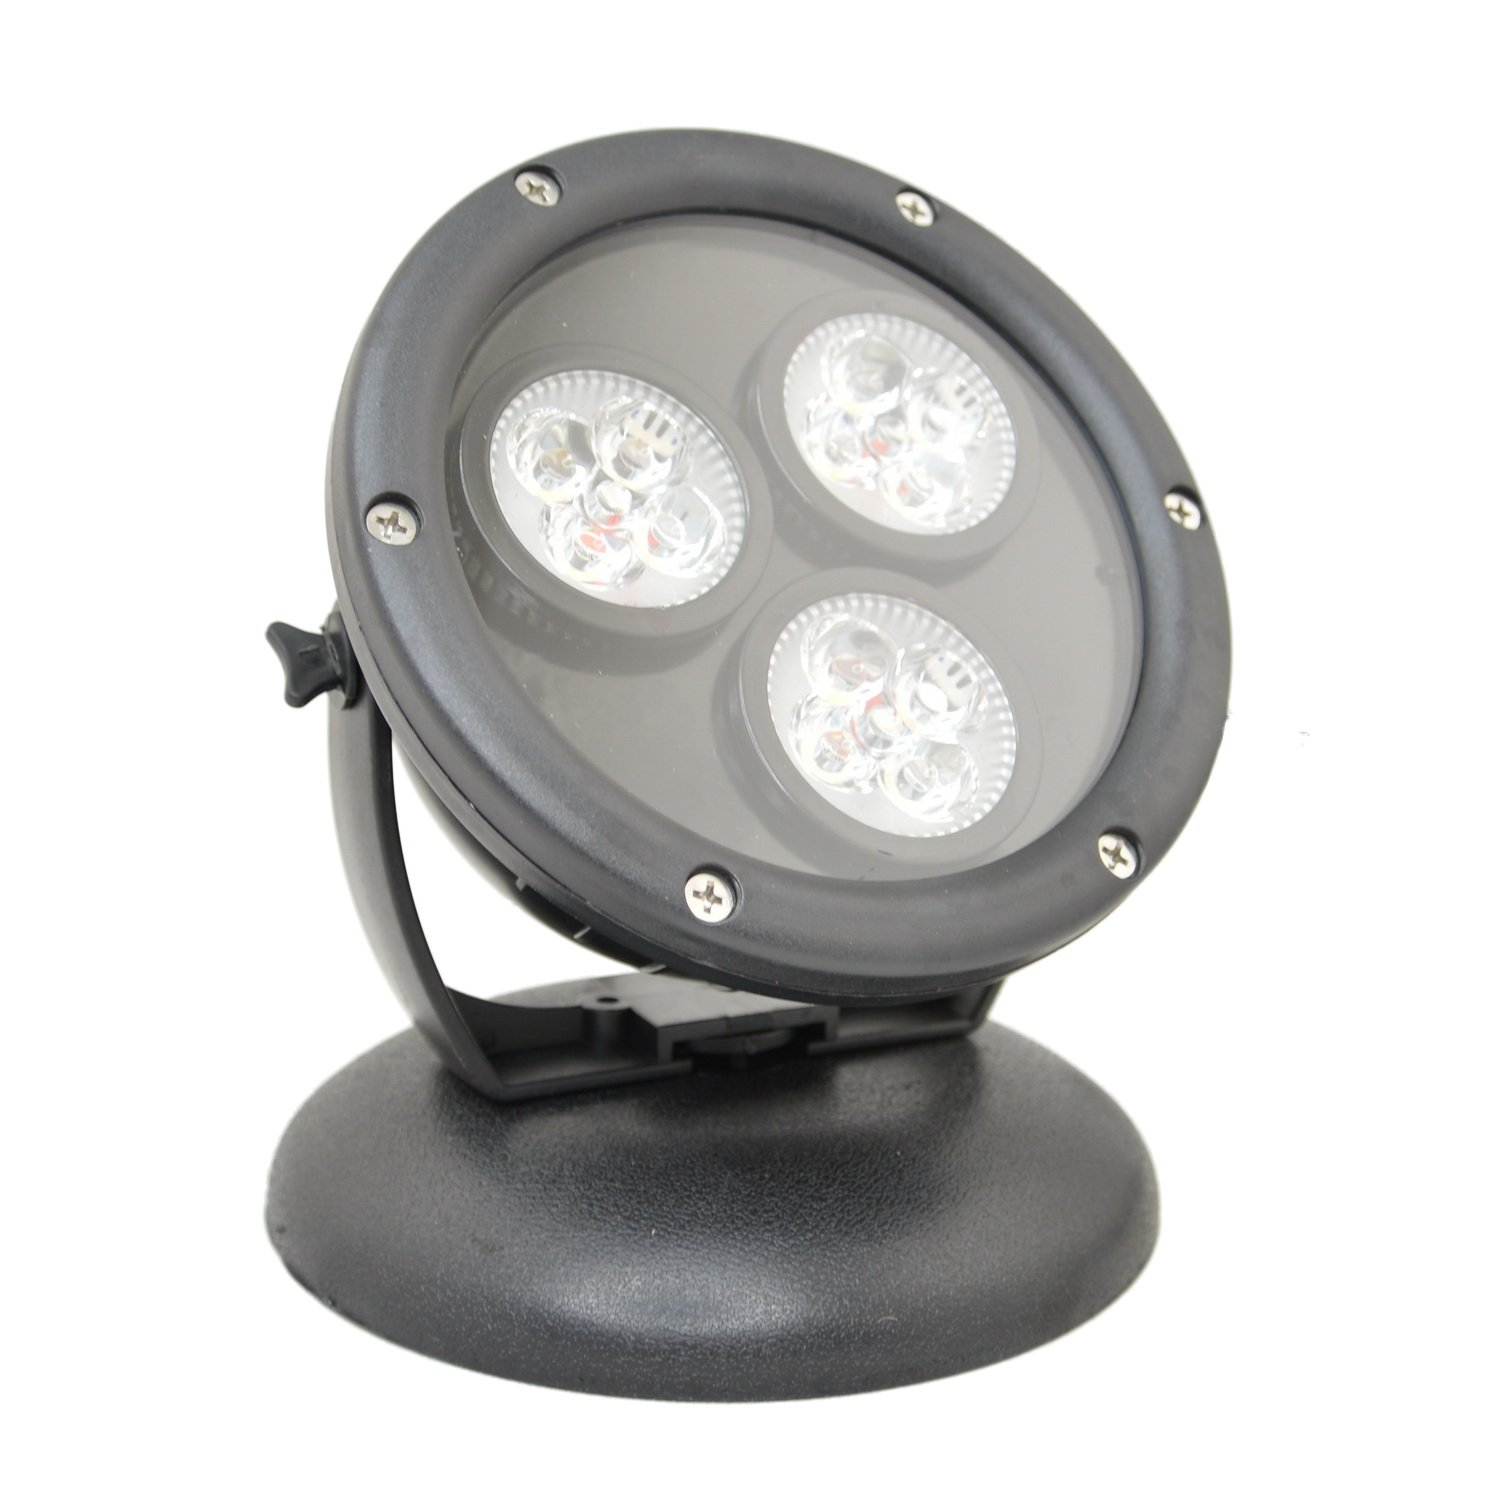 Jebao 12w Submersible LED Spot Light for Landscape Light, Commercial, Home Garden, Tree, Yard, Waterproof, Warm White